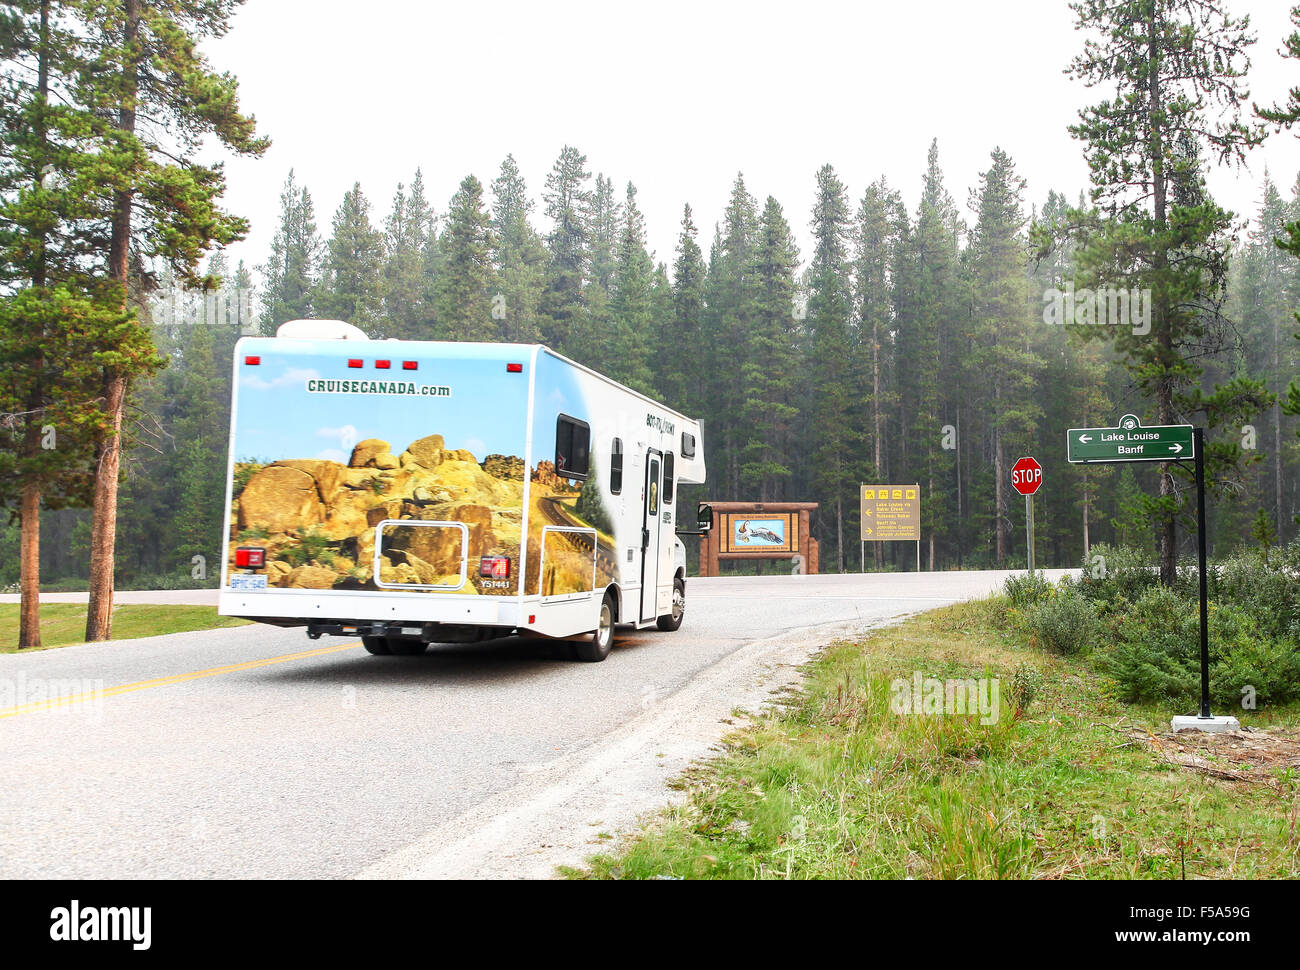 A Cruisecanada Recreation Vehicle Or Rv Or Mobile Home